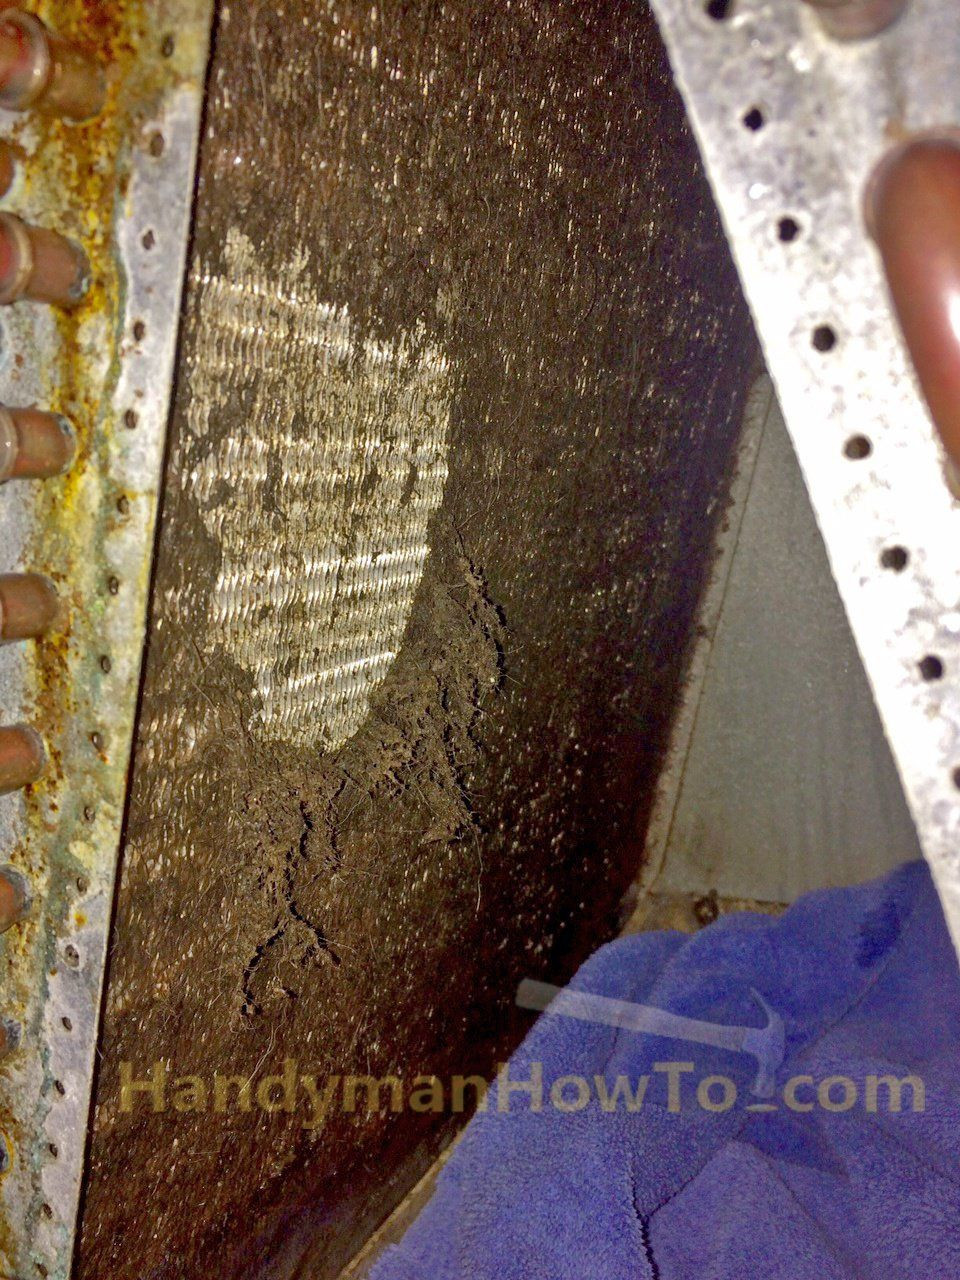 hardwood floor refinishing waterbury ct of ac evaporator coils interior clogged with dirt and mold diys intended for ac evaporator coils interior clogged with dirt and mold